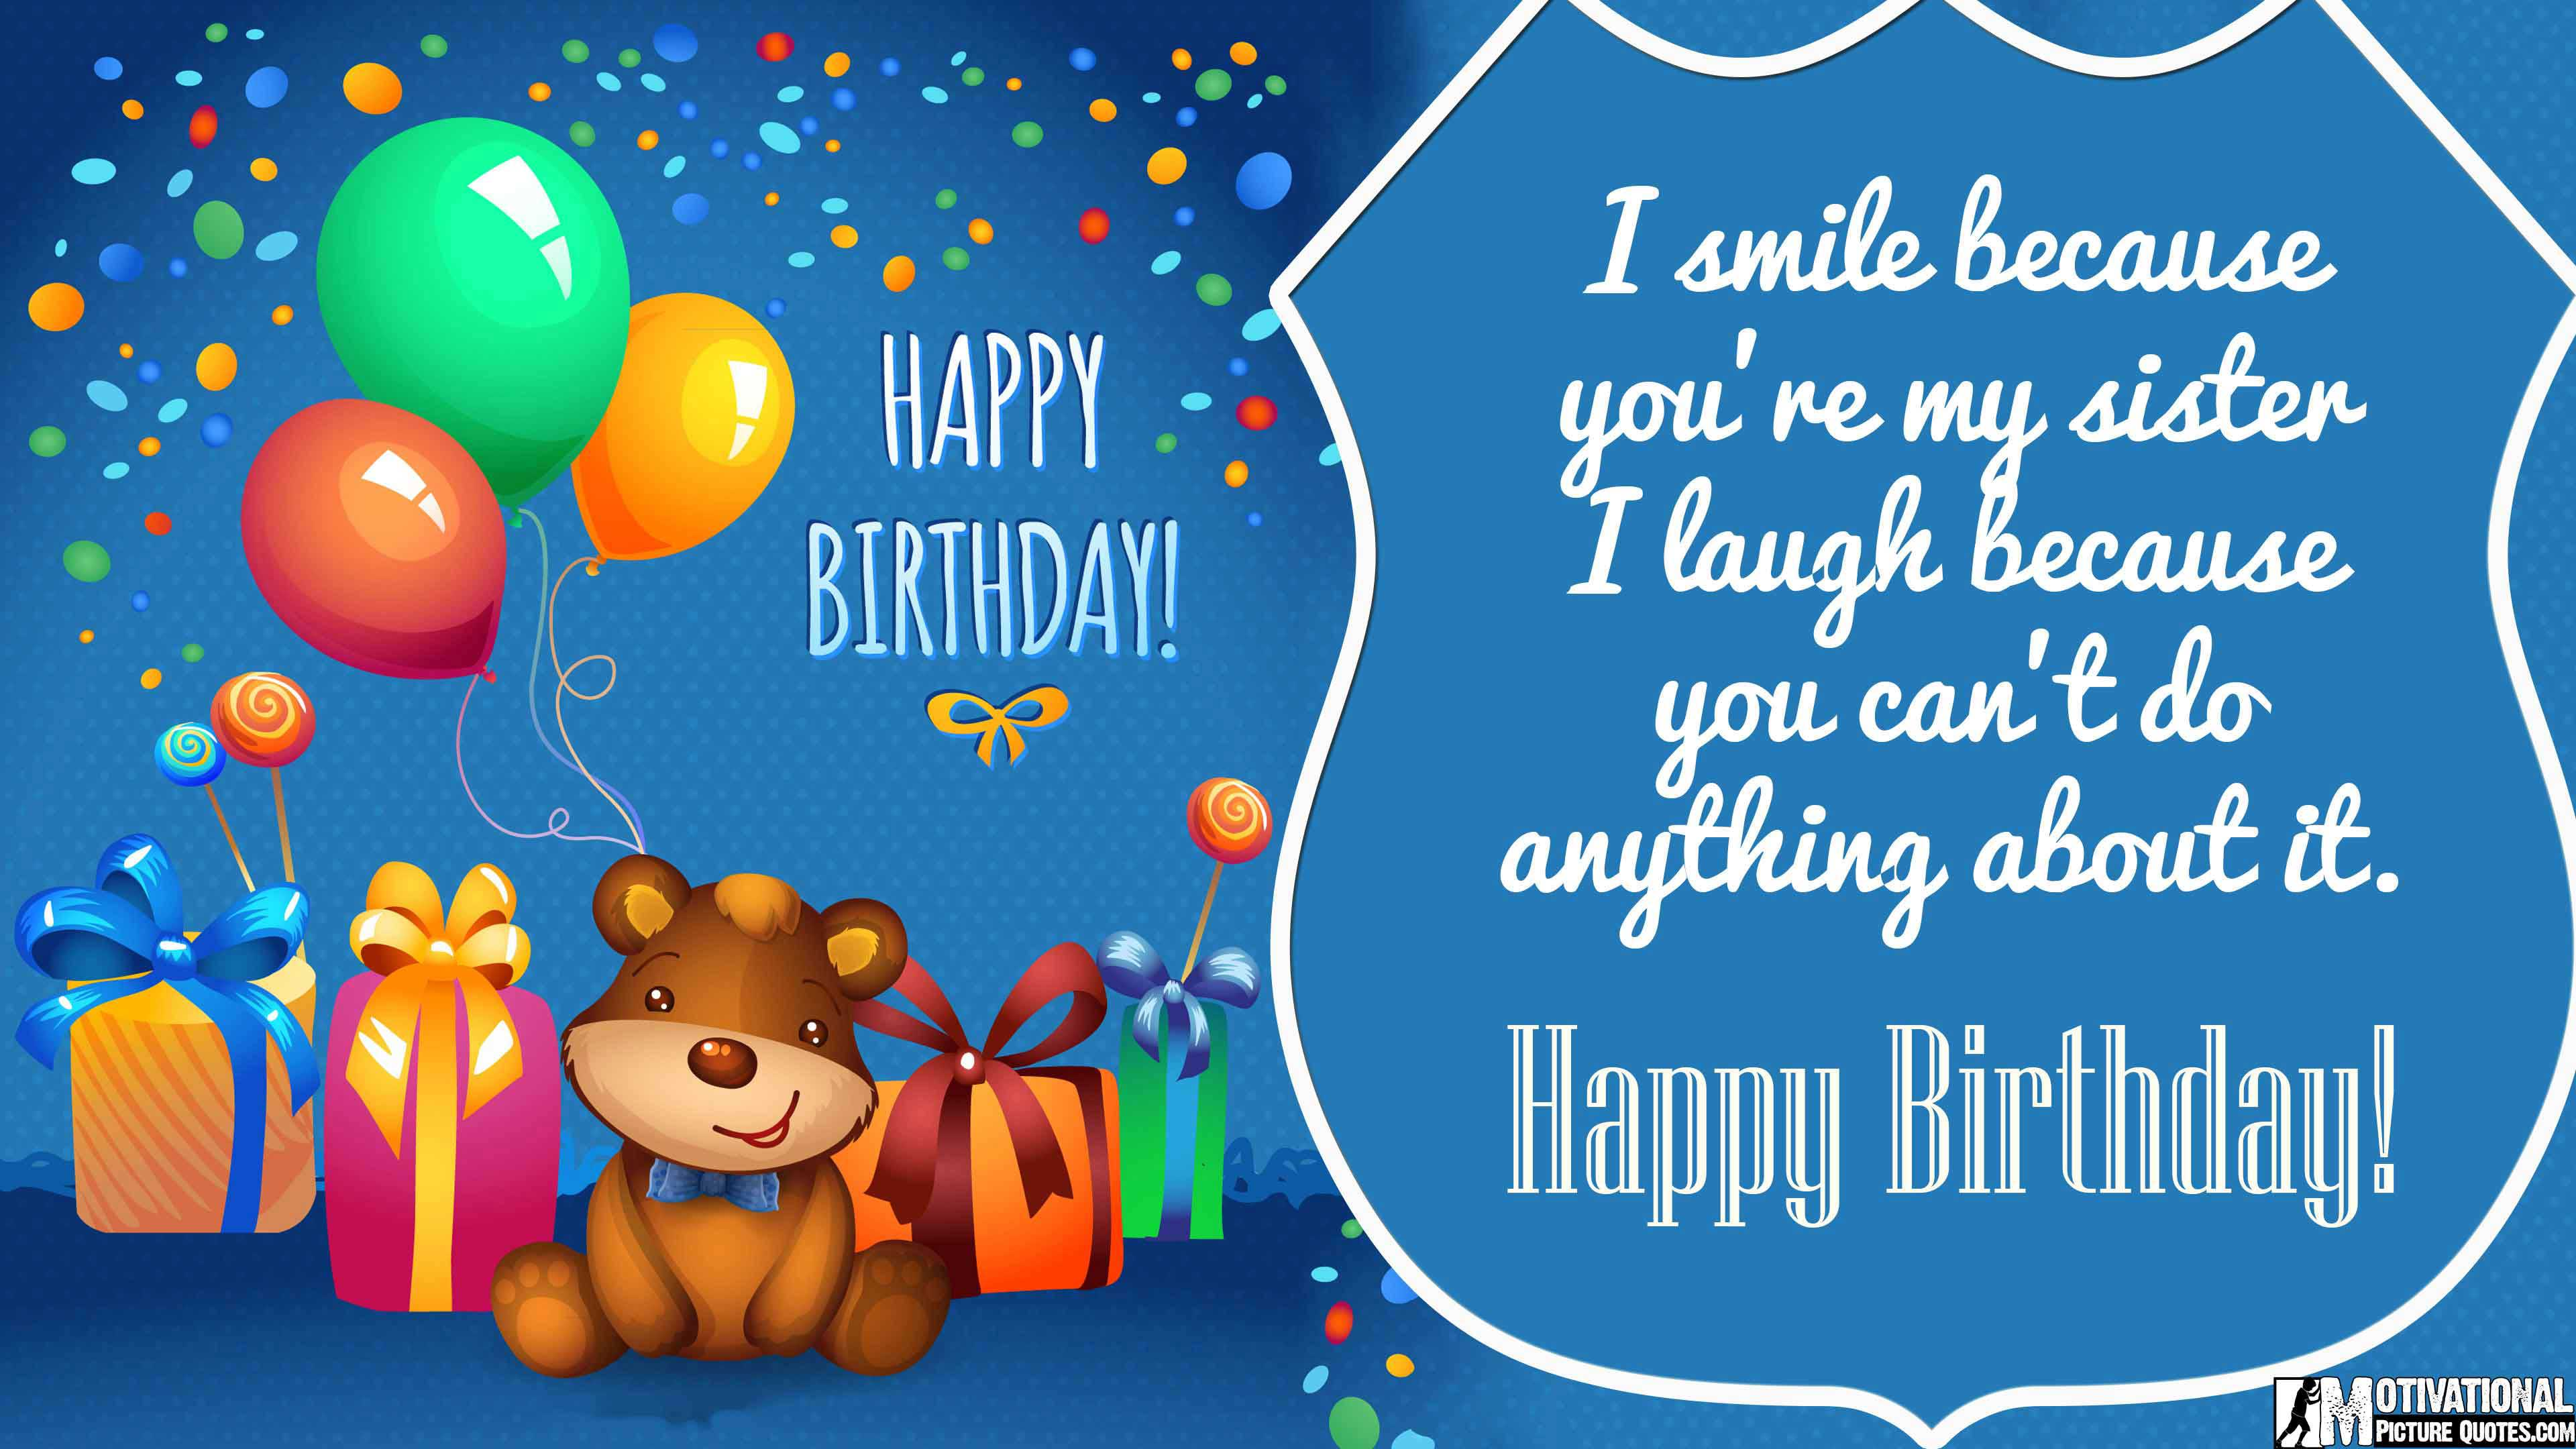 35 inspirational birthday quotes images insbright cute birthday messages for sister m4hsunfo